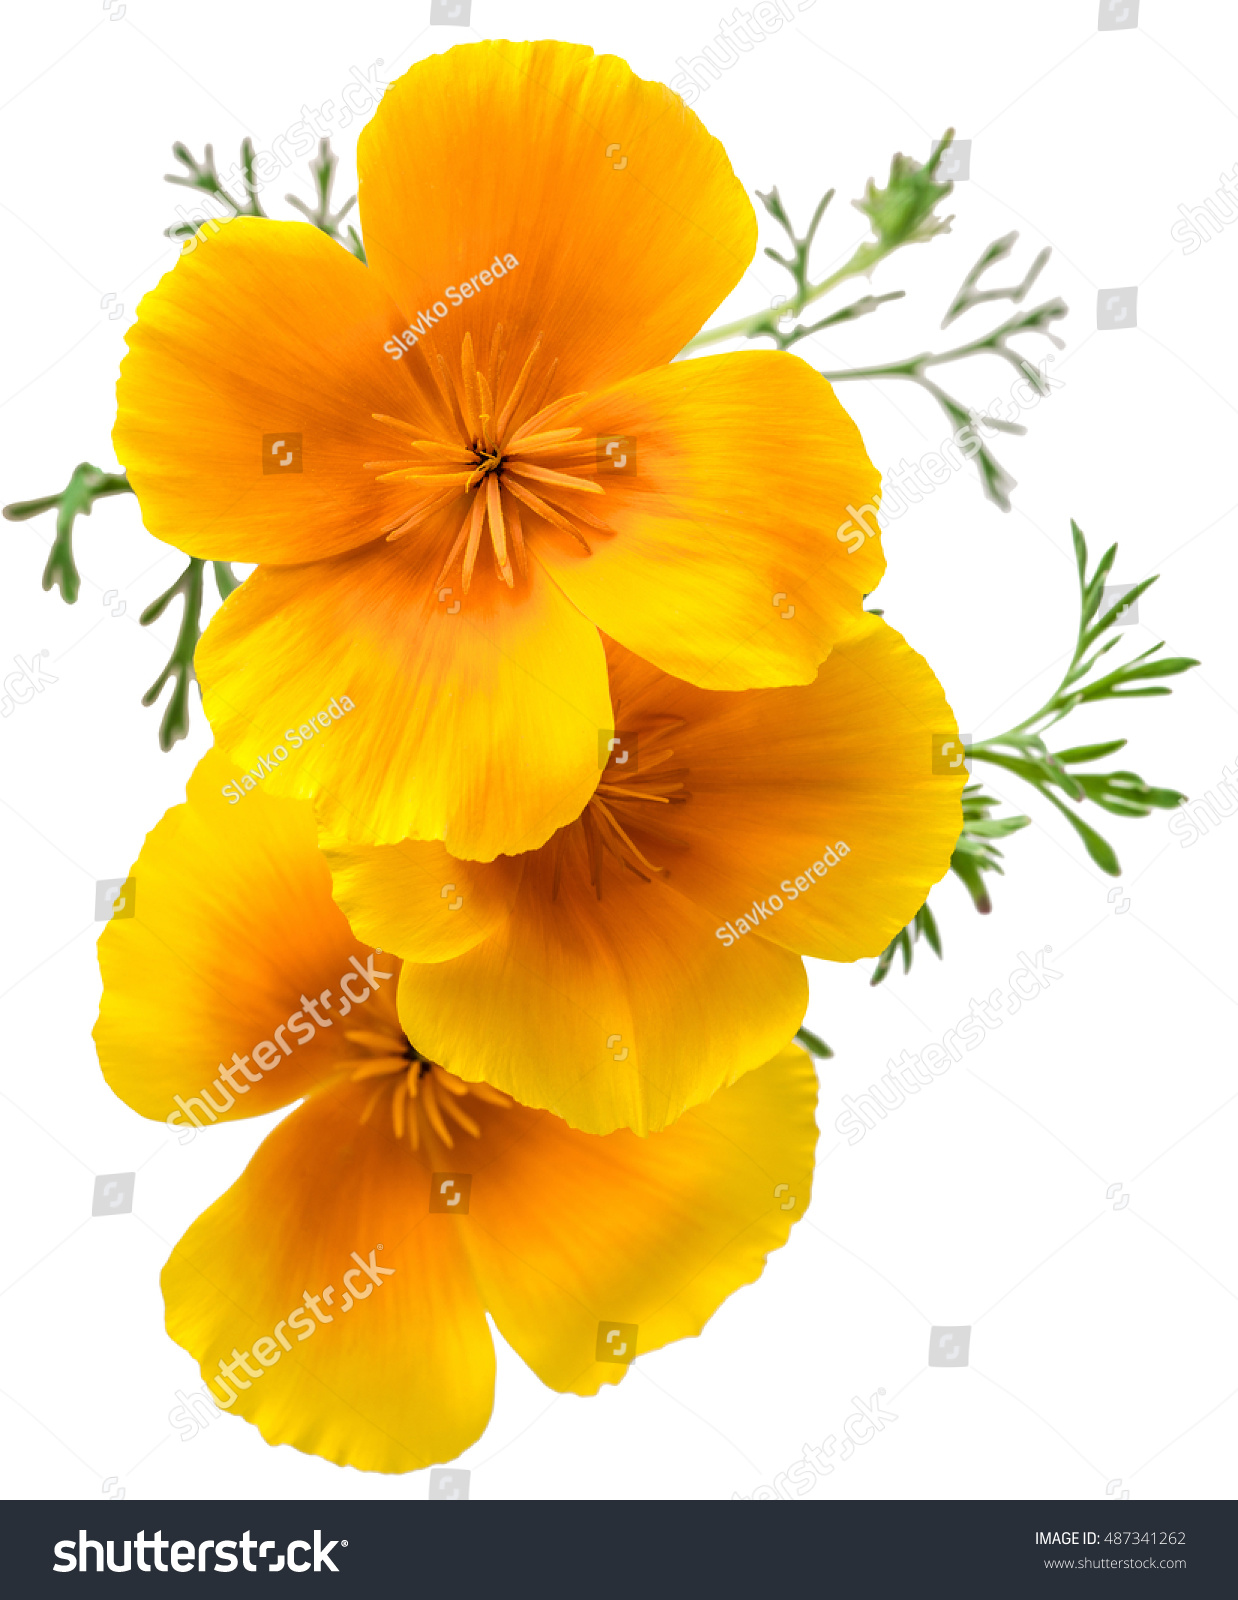 Flower Eschscholzia Californica California Poppy Golden Stock Photo